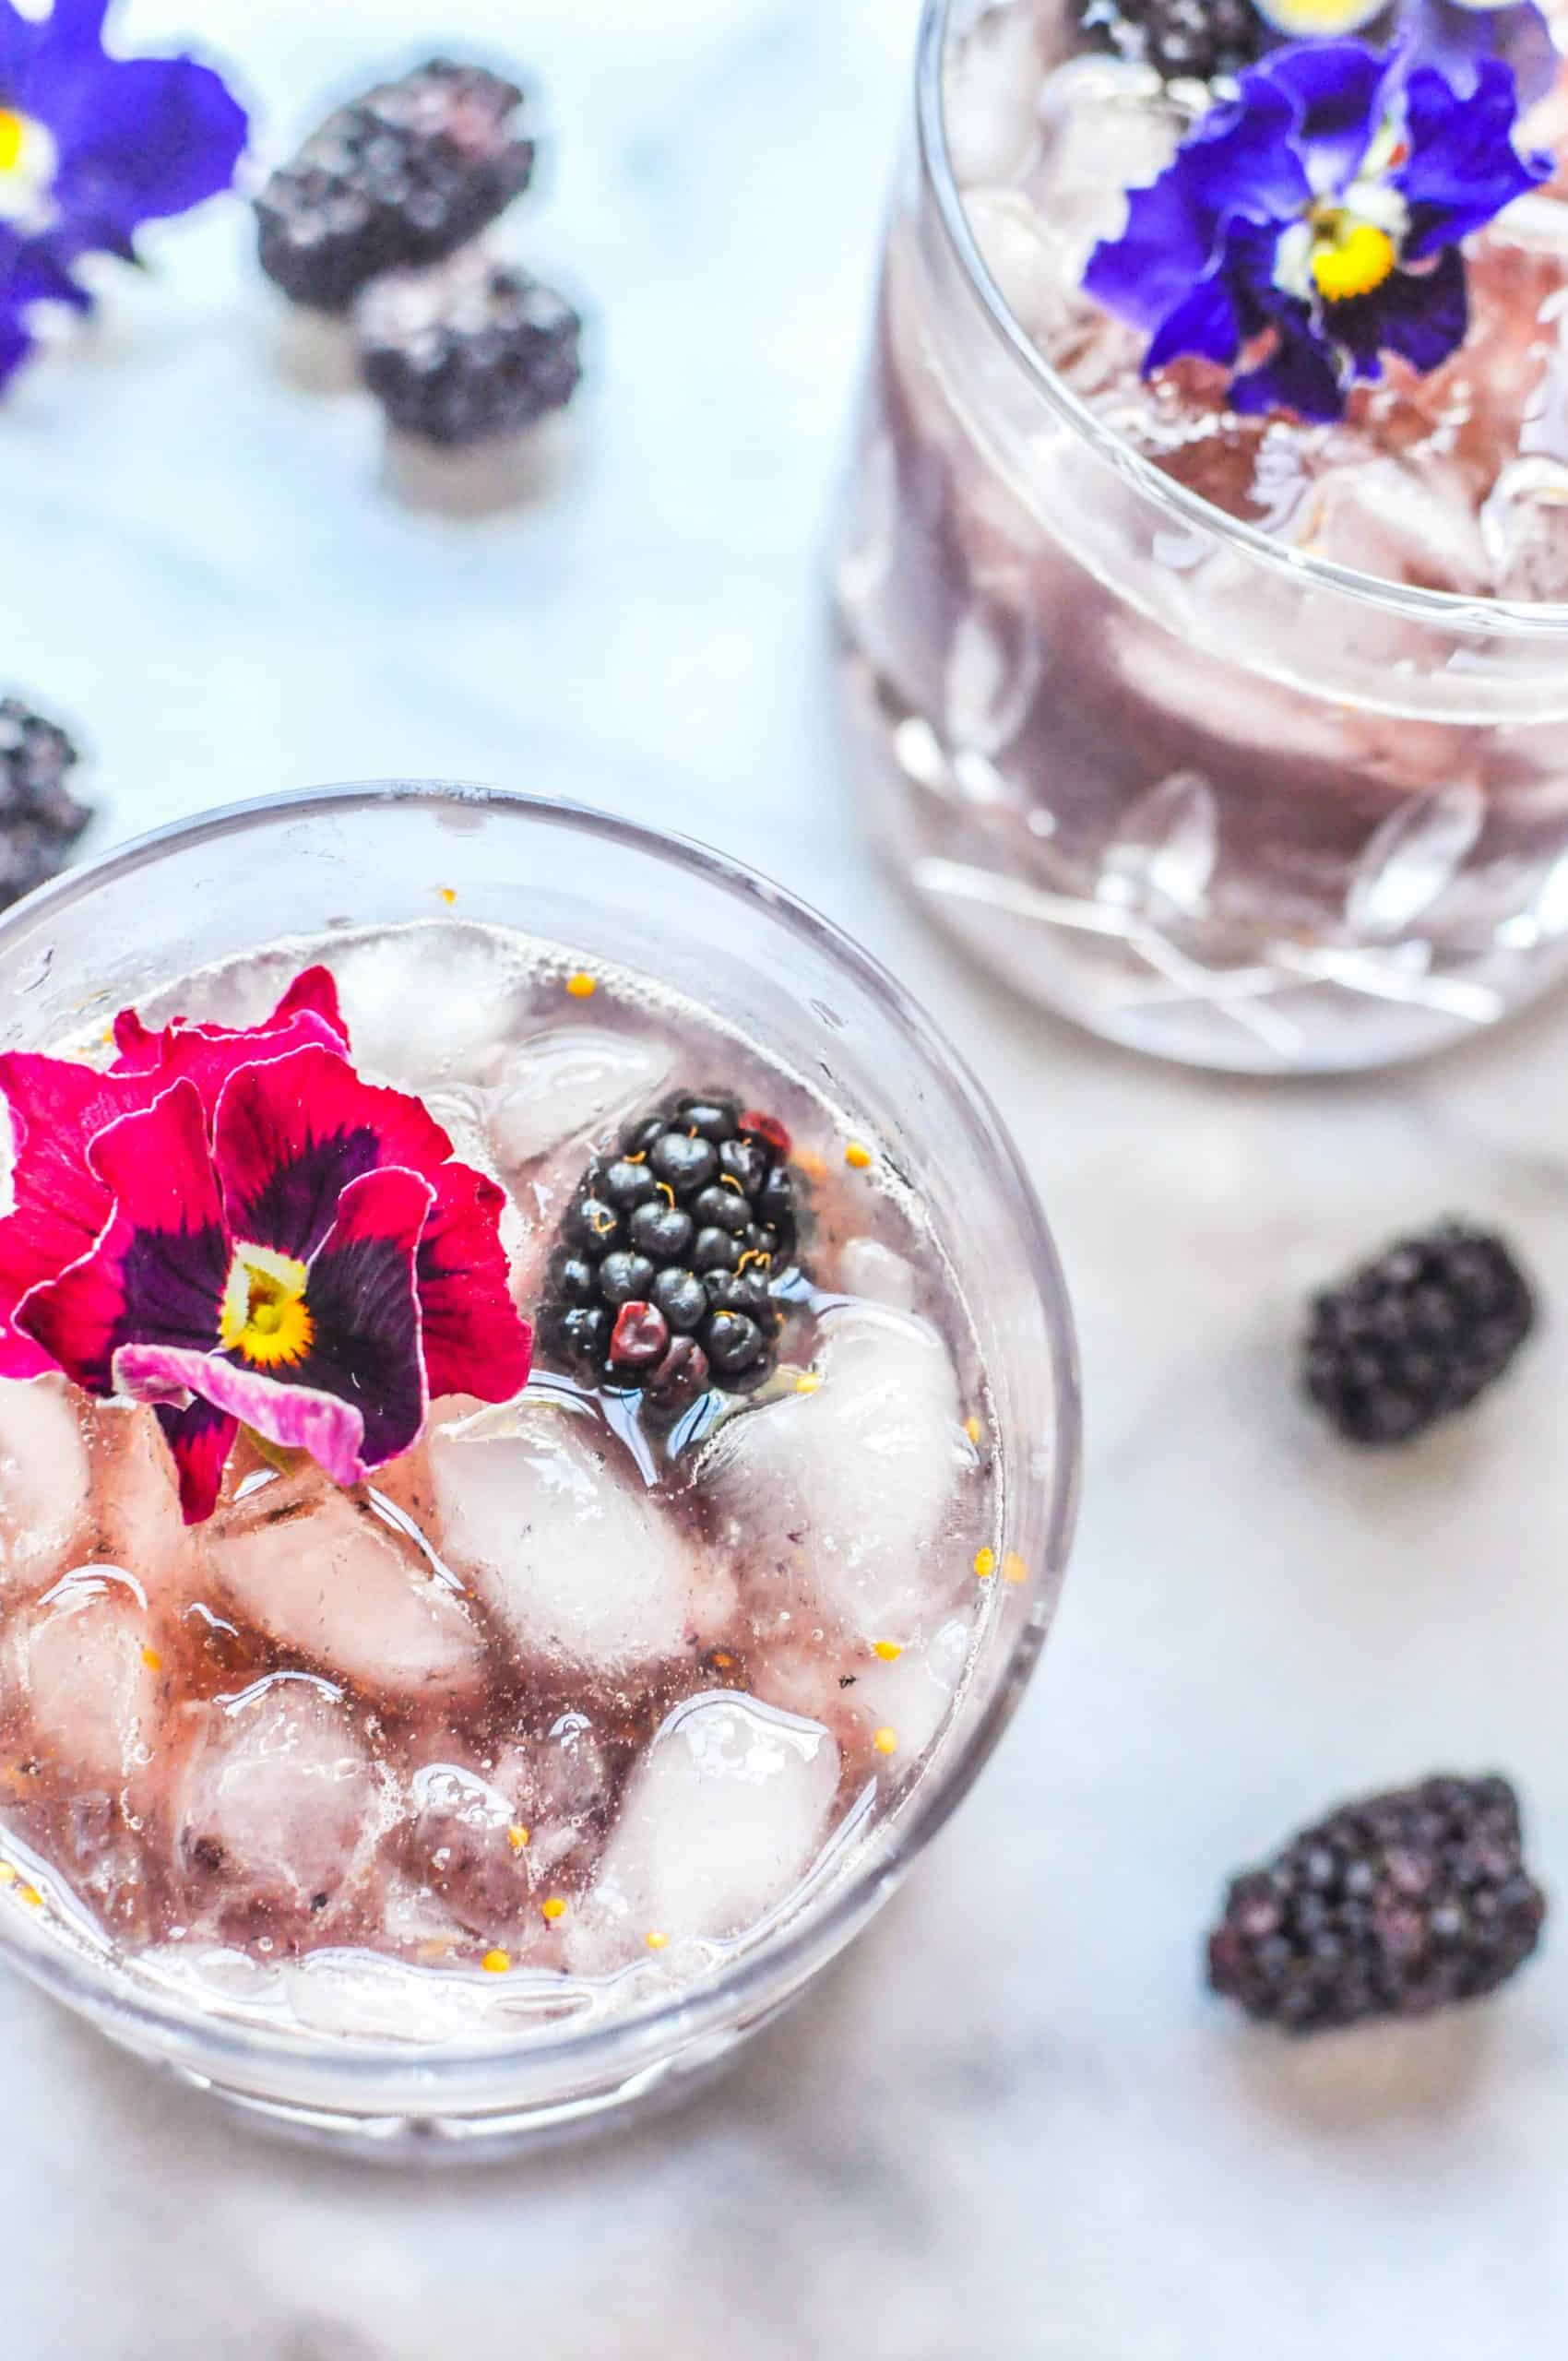 smash cocktail in a glass with blackberries